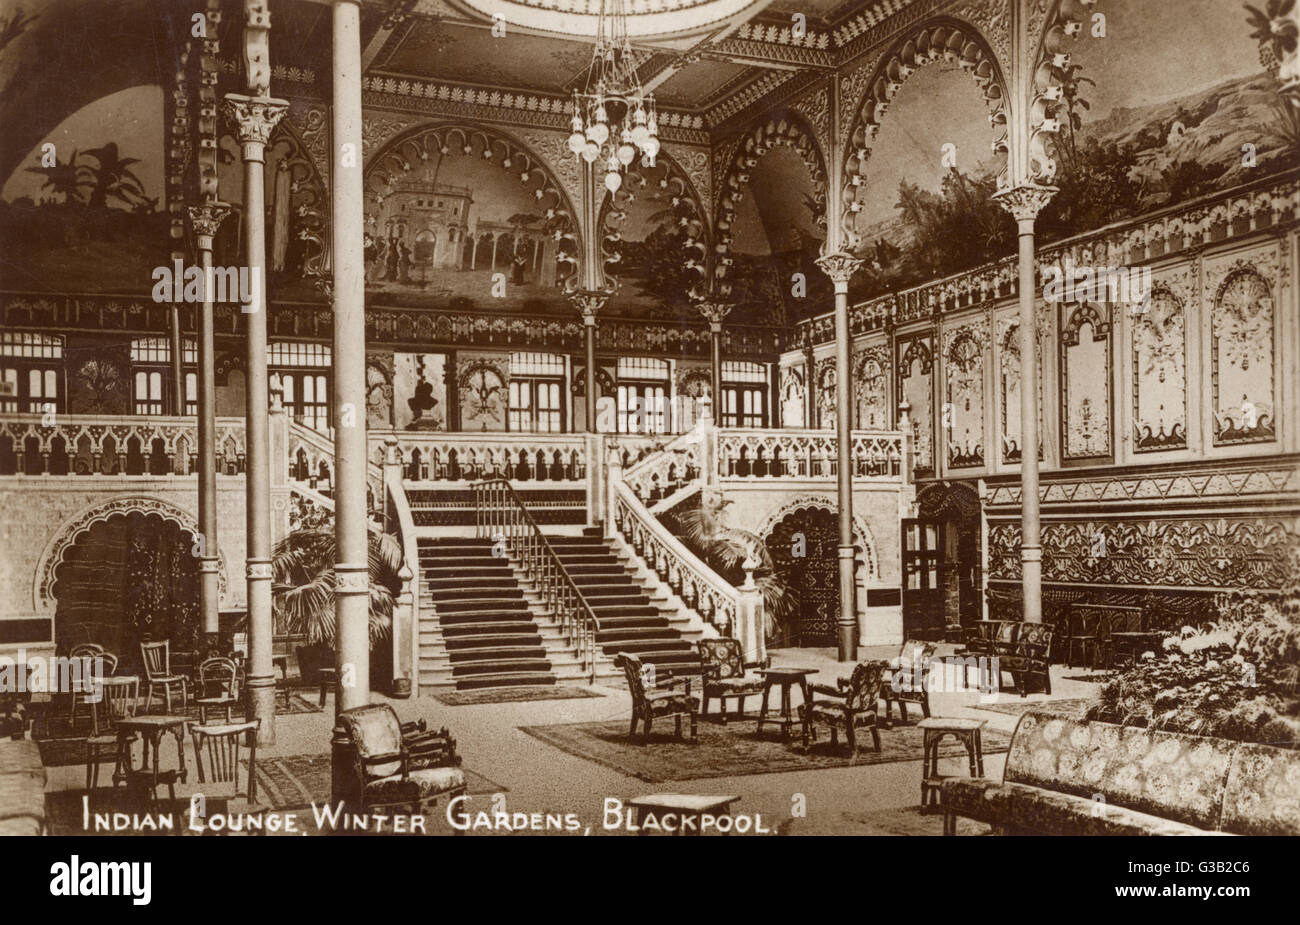 blackpool lancashire indian lounge winter gardens date stock